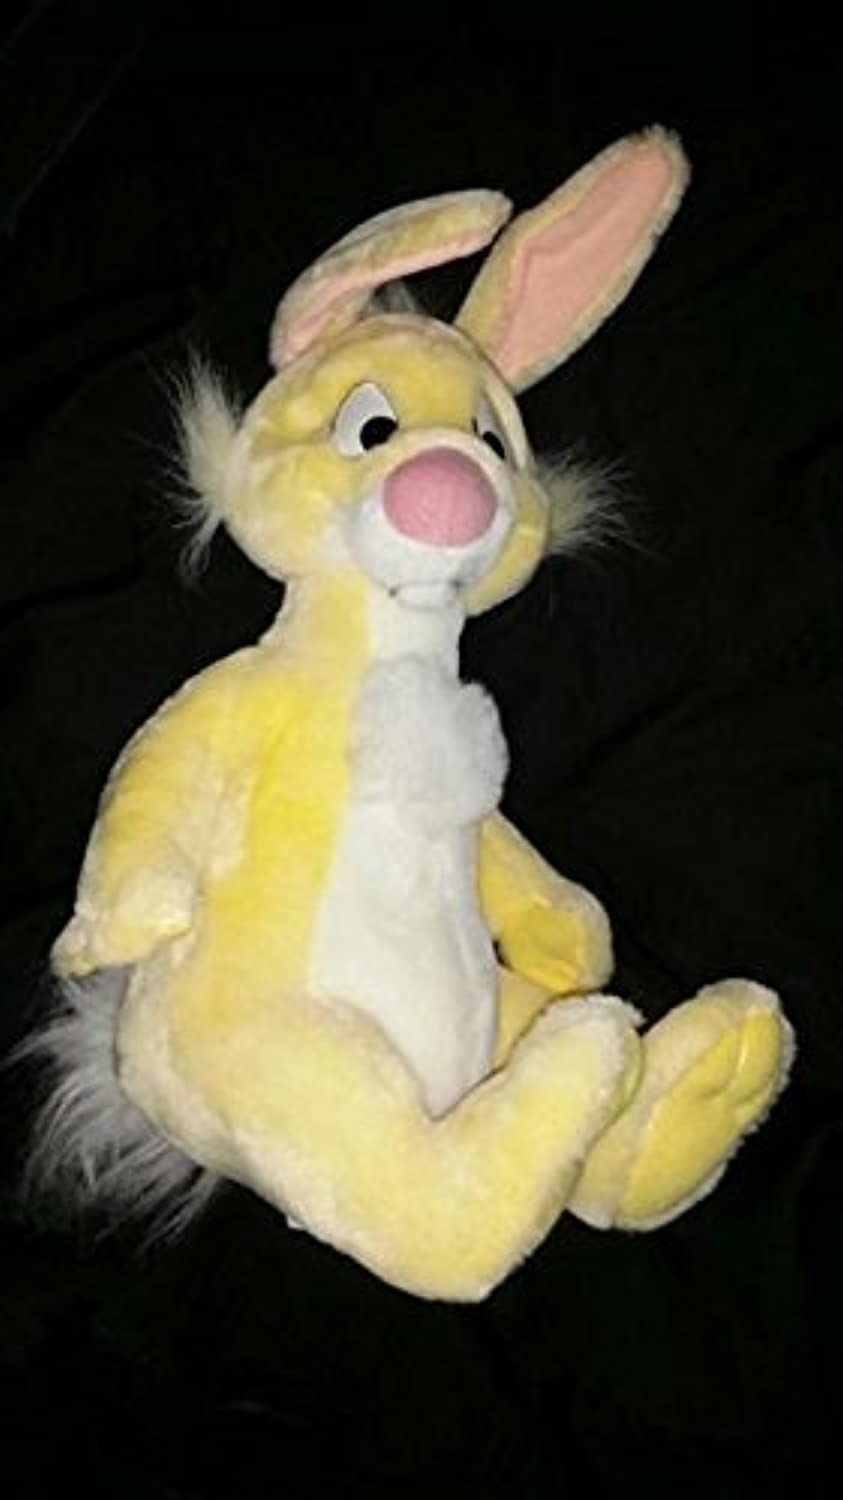 Hard to Find OverGrößed 16 Inch Plush Winnie the Pooh Rabbit Doll New with Tags - Adorable and Super Cuddly by Disney